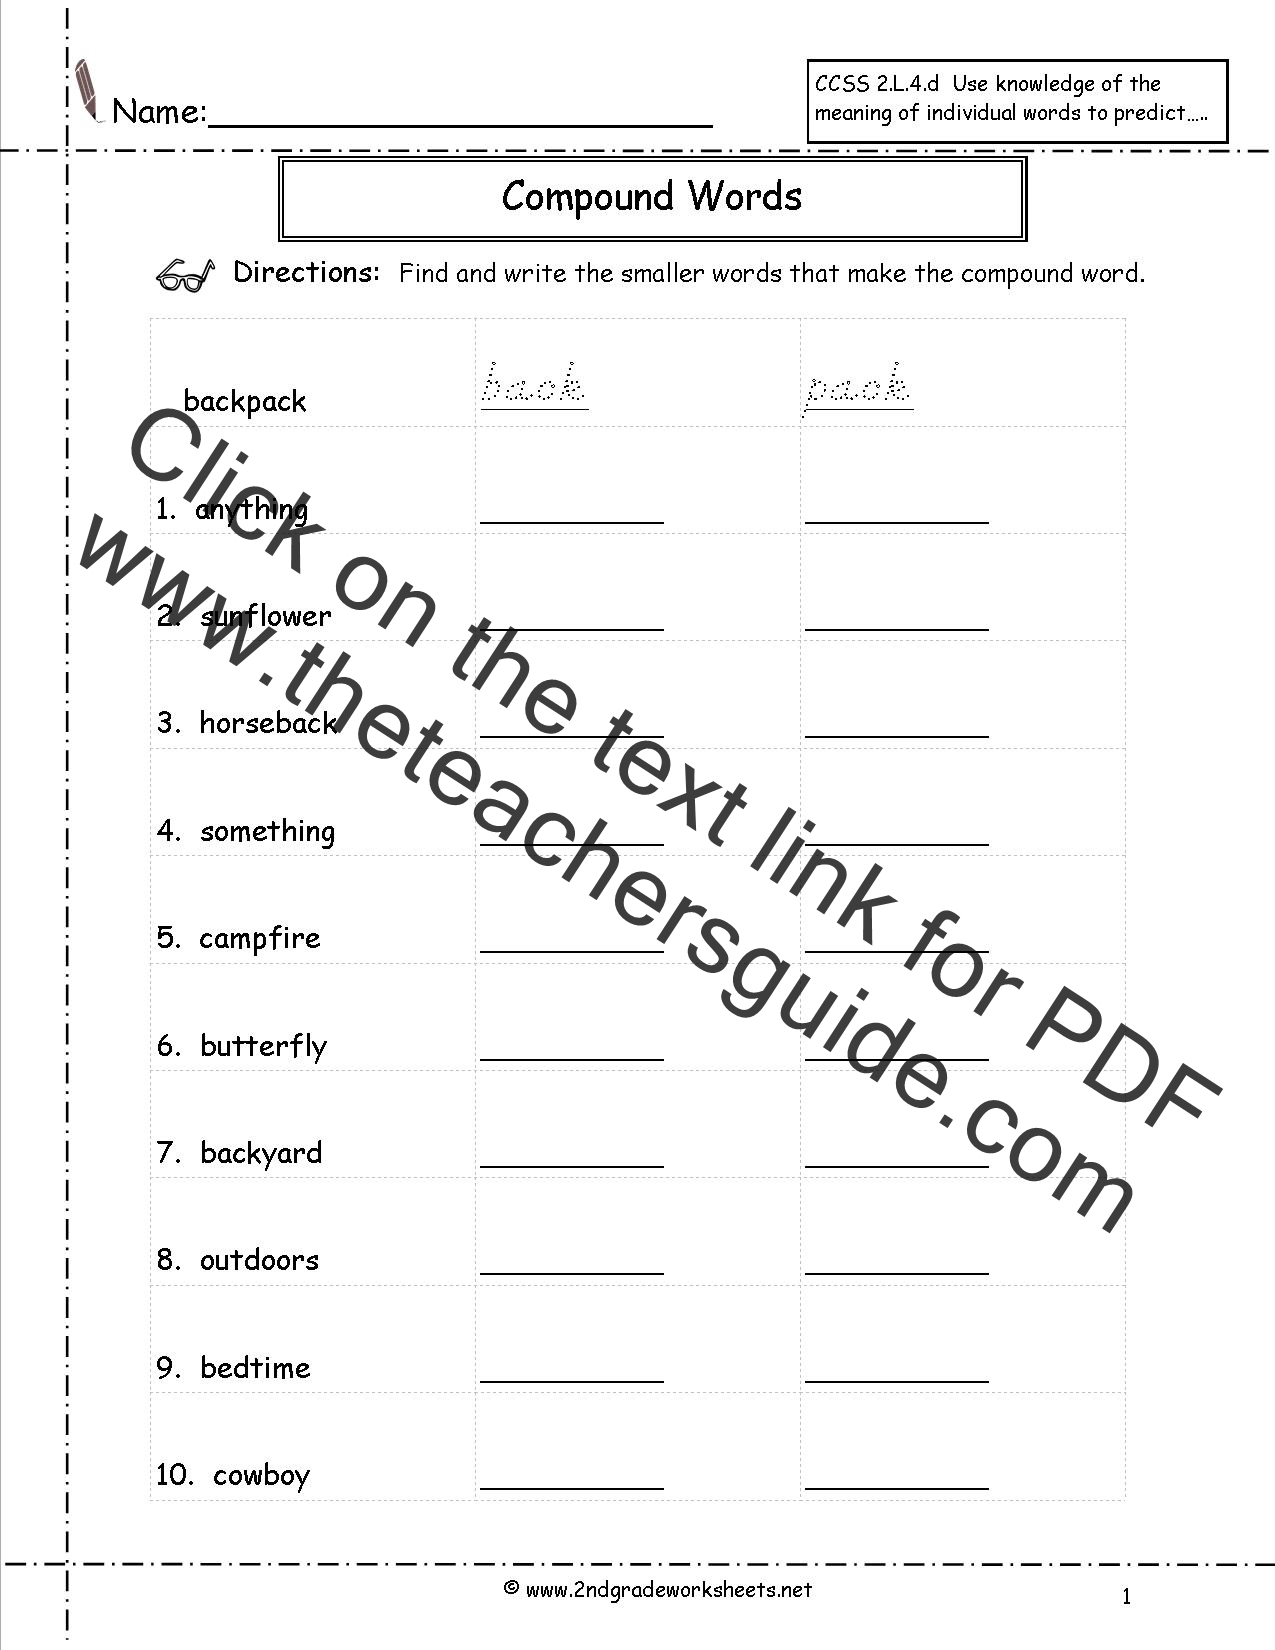 worksheet Fun Language Arts Worksheets free languagegrammar worksheets and printouts compound words worksheets